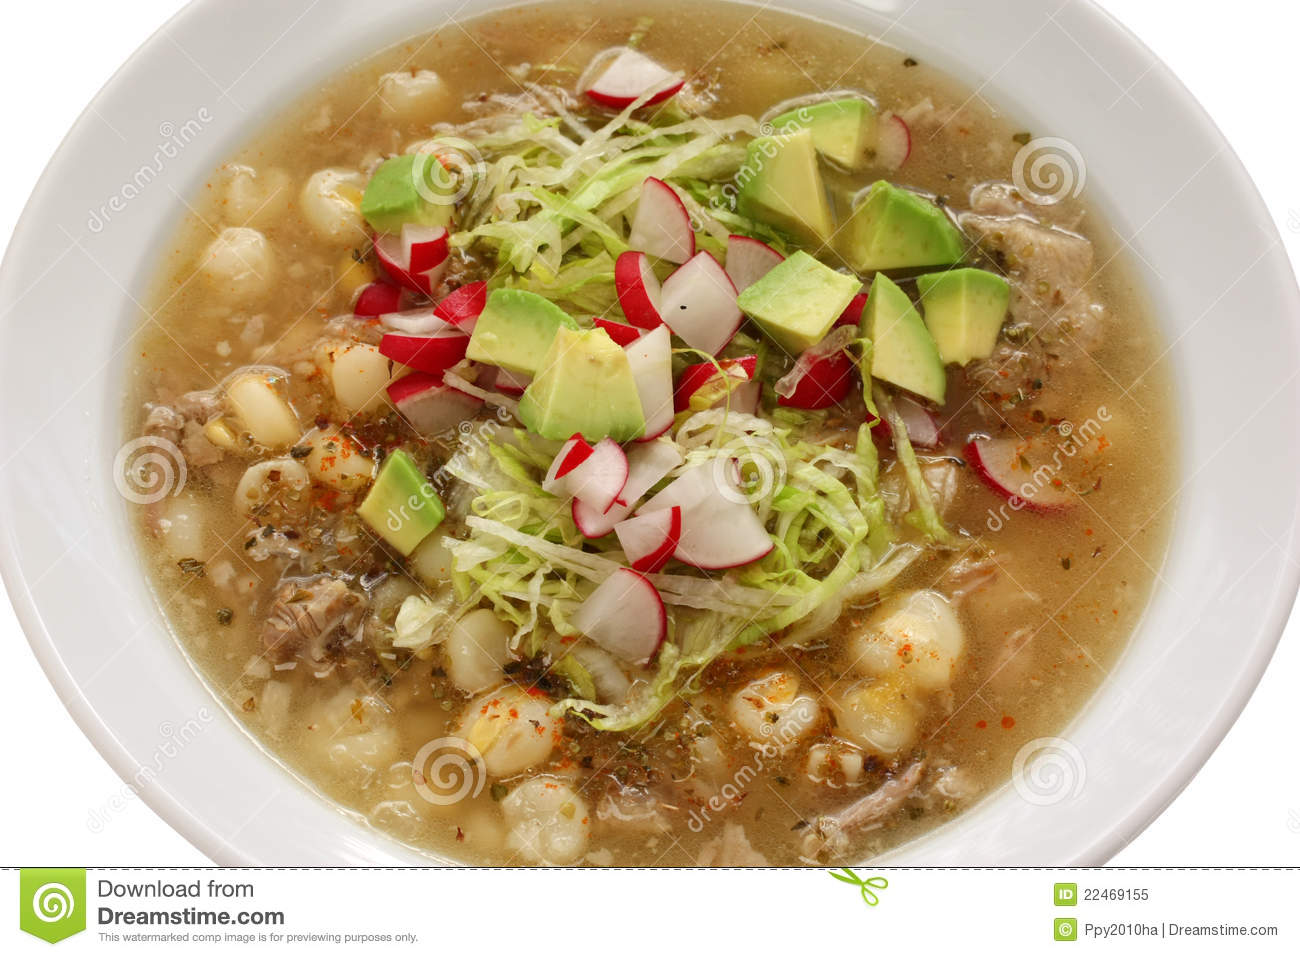 Pozole cuisine mexicaine photo libre de droits image 22469155 for Cuisine mexicaine